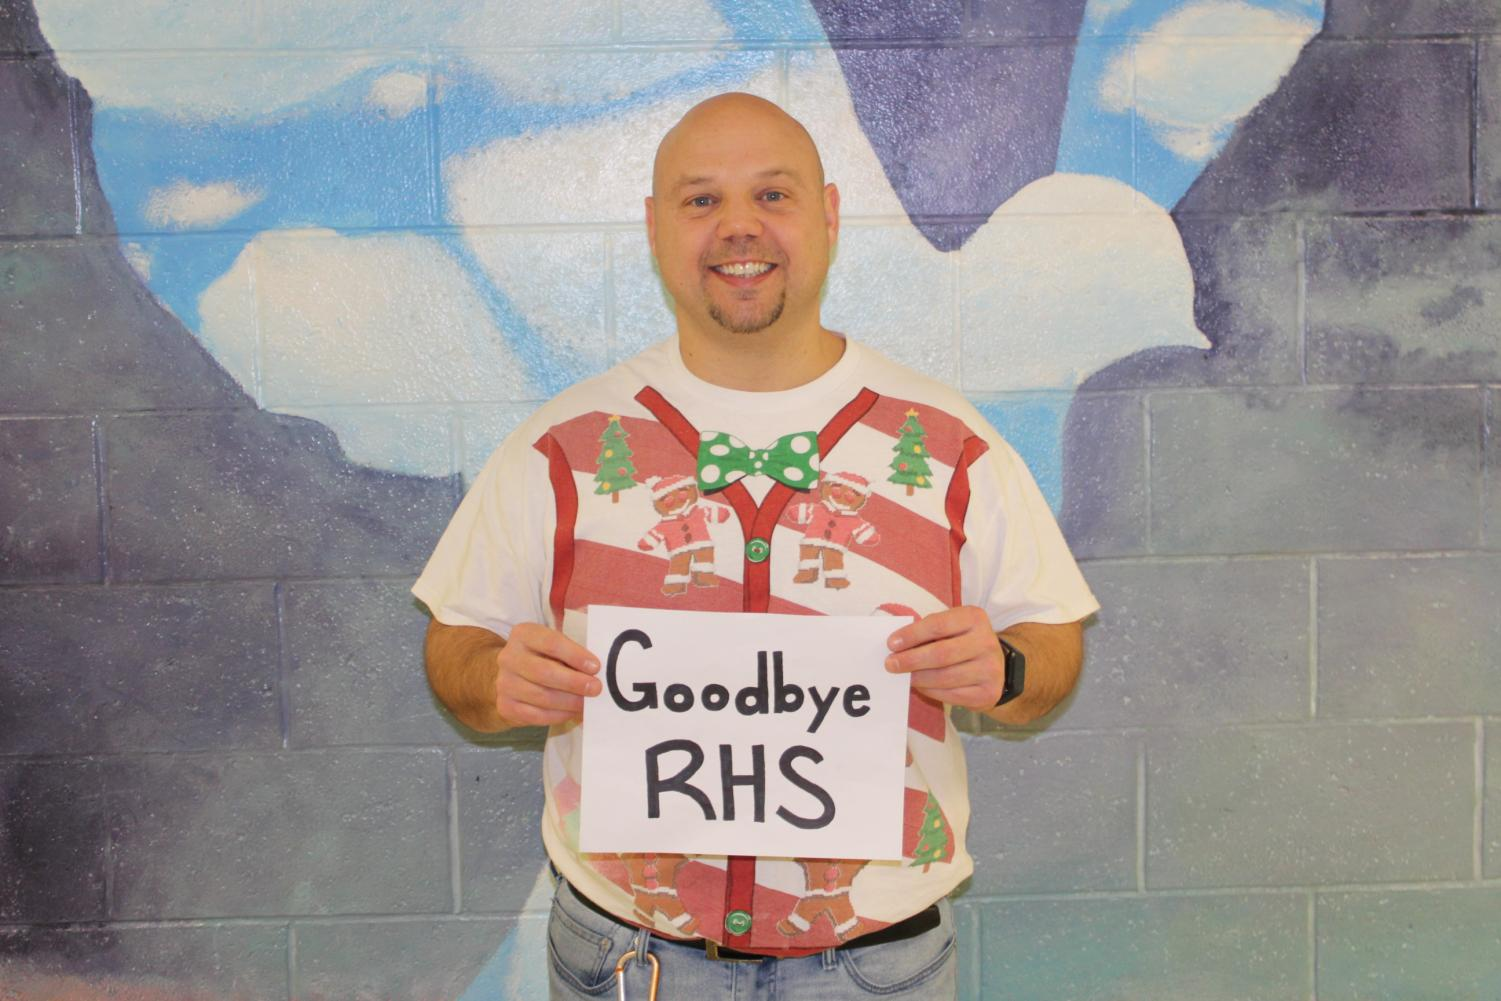 Former teacher Michael Zimmer getting ready to say goodbye to RHS.